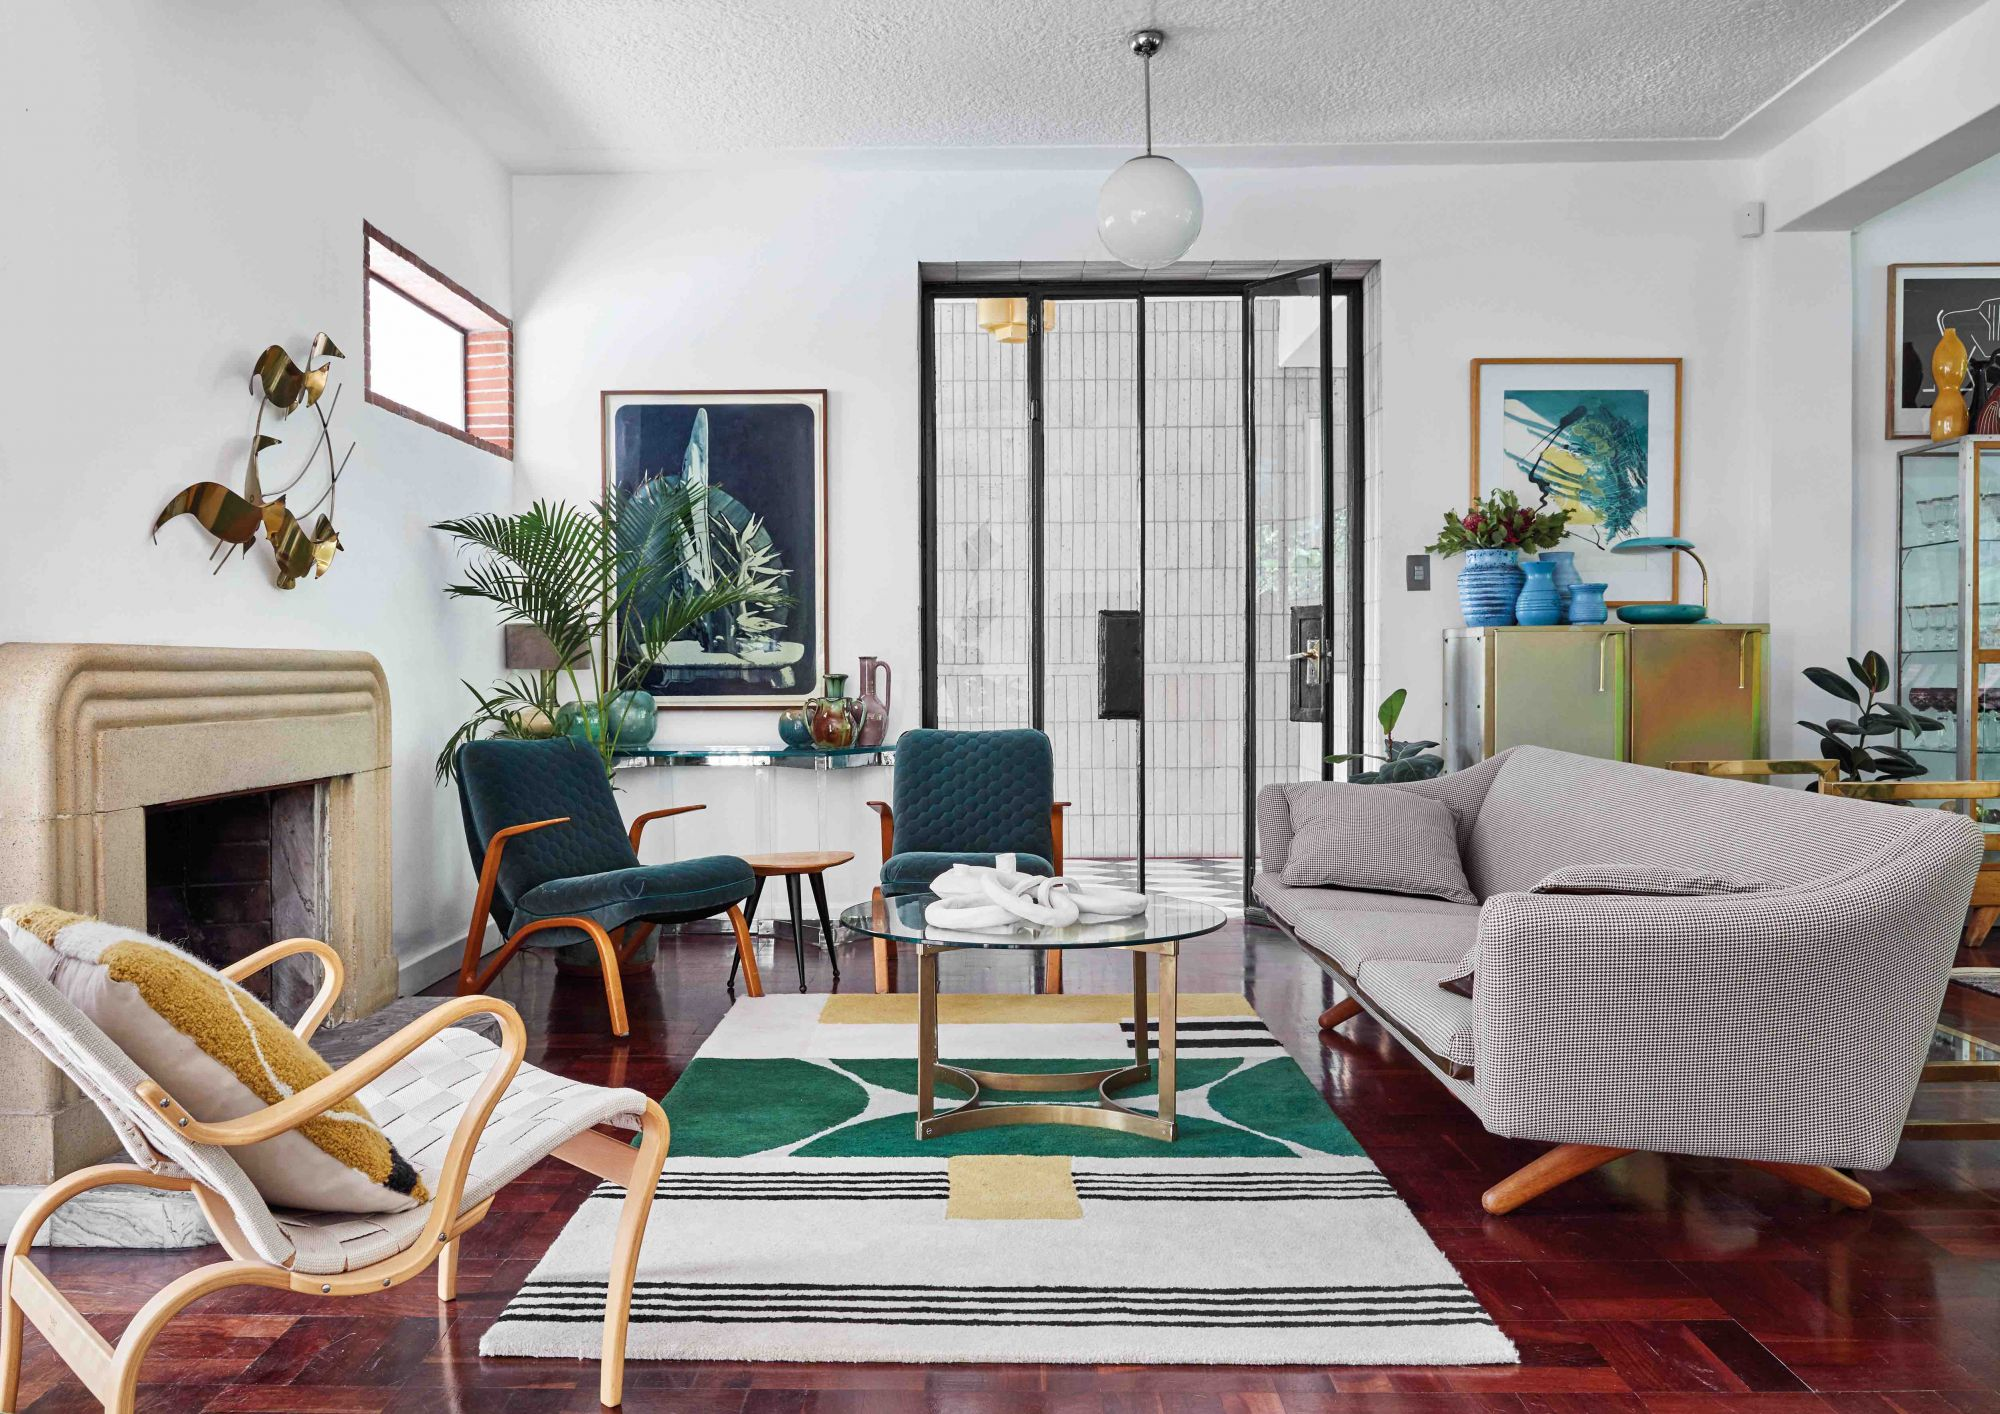 Home Tour: A Bauhaus-Inspired House In Cape Town That Combines Greenery With Mid-Century Chic